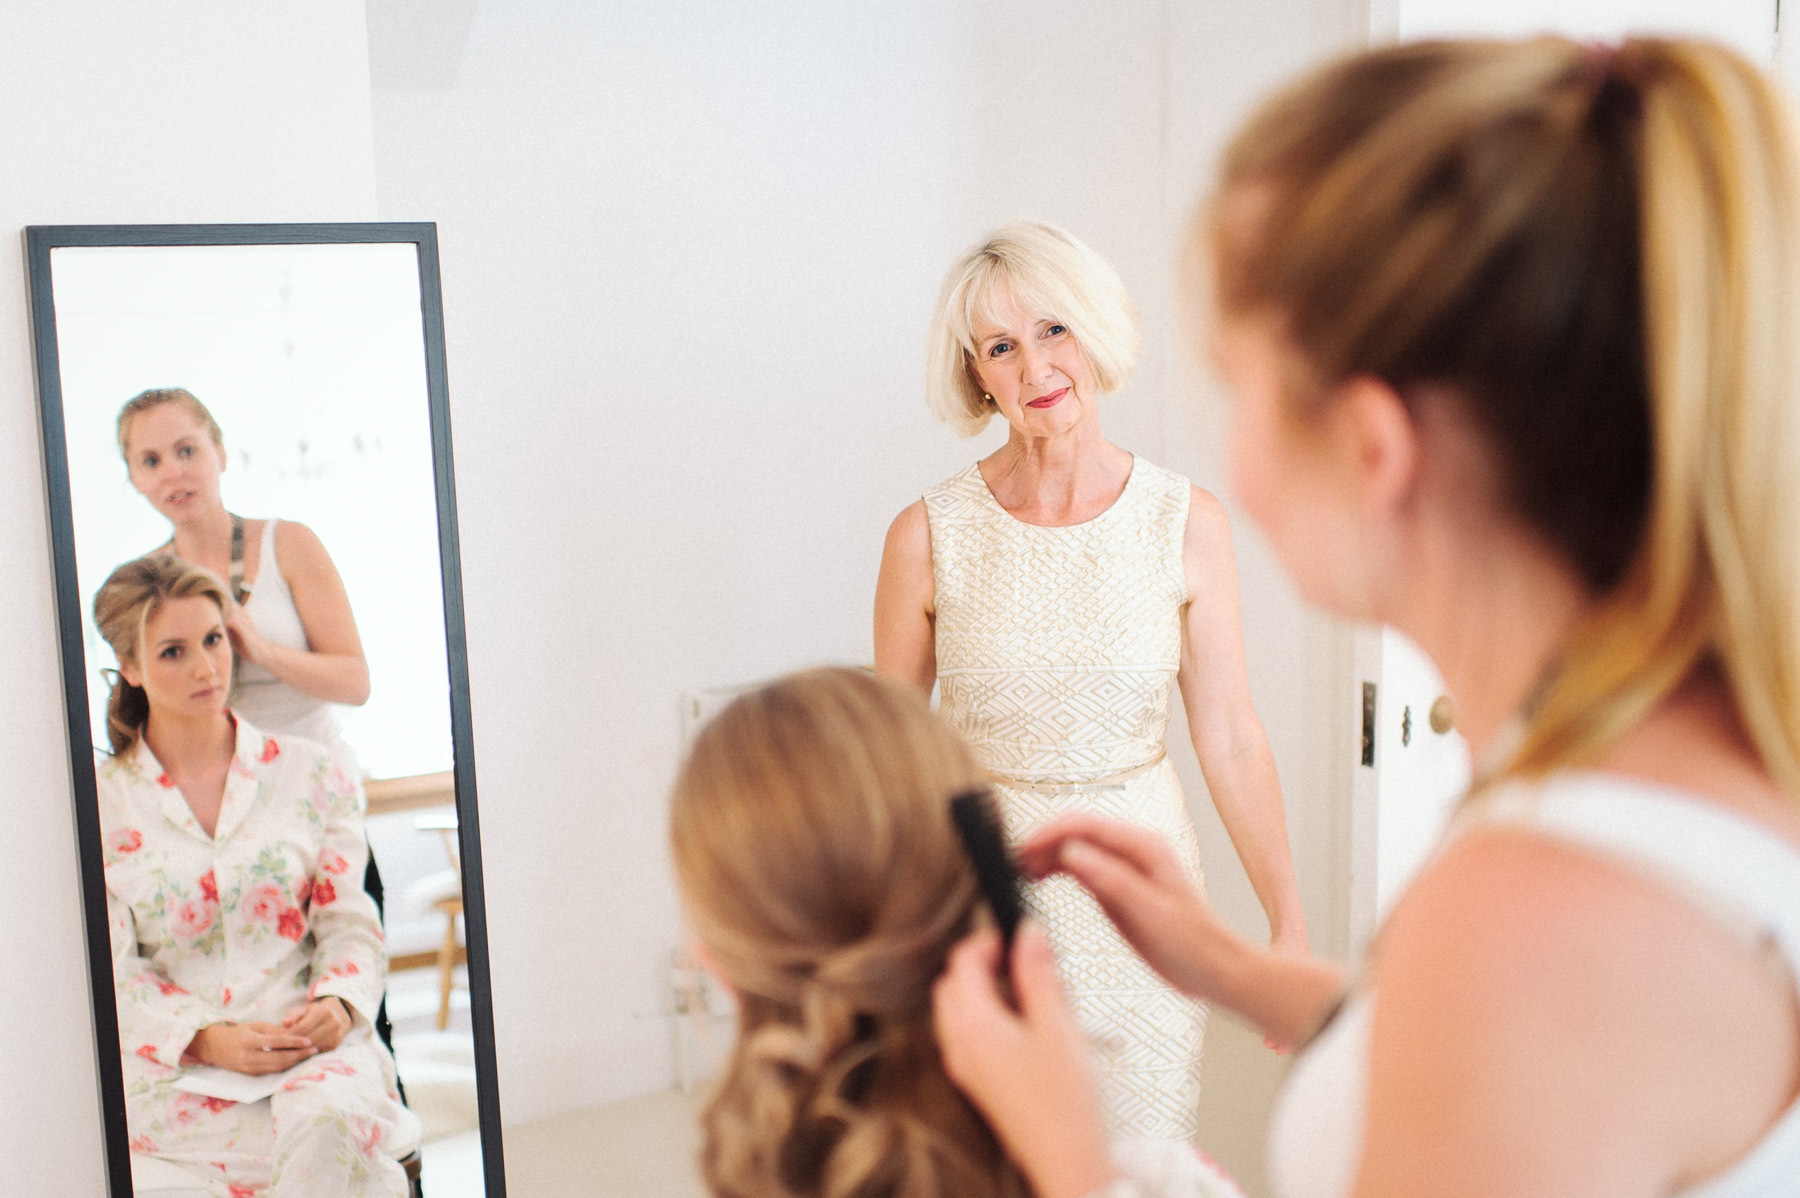 the mother of the bride looks on during the makeup session